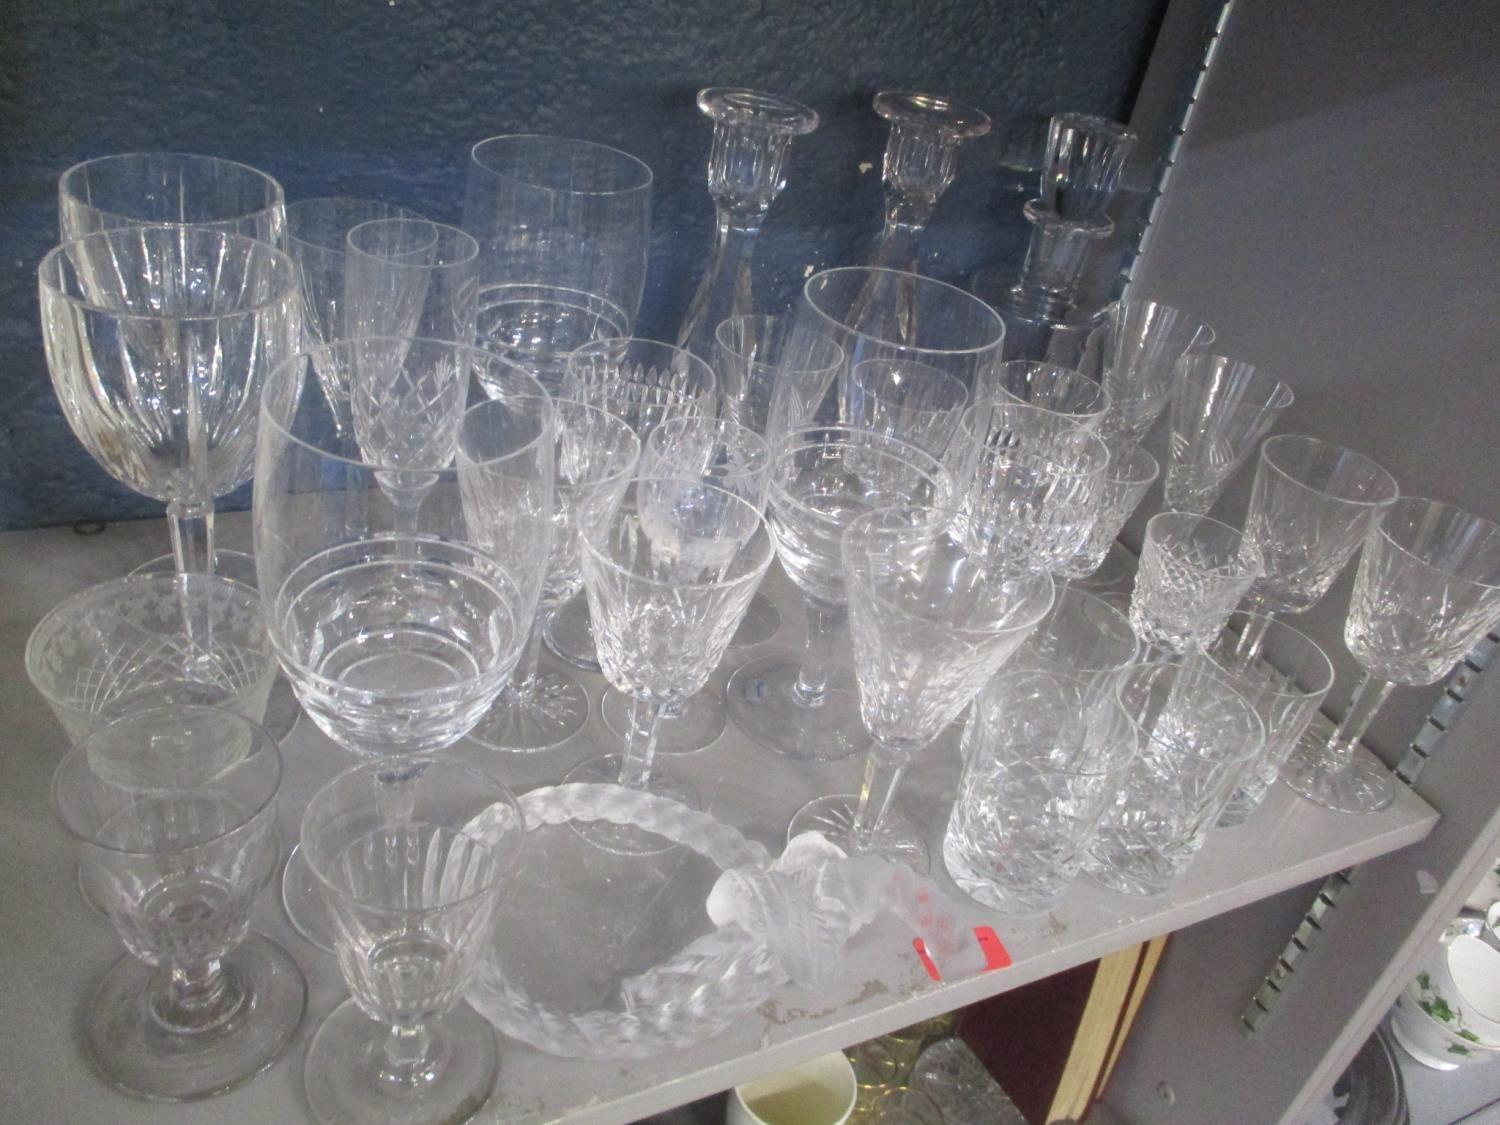 Mixed crystal glassware to include Waterford Lismore, Baccarat decanter and others